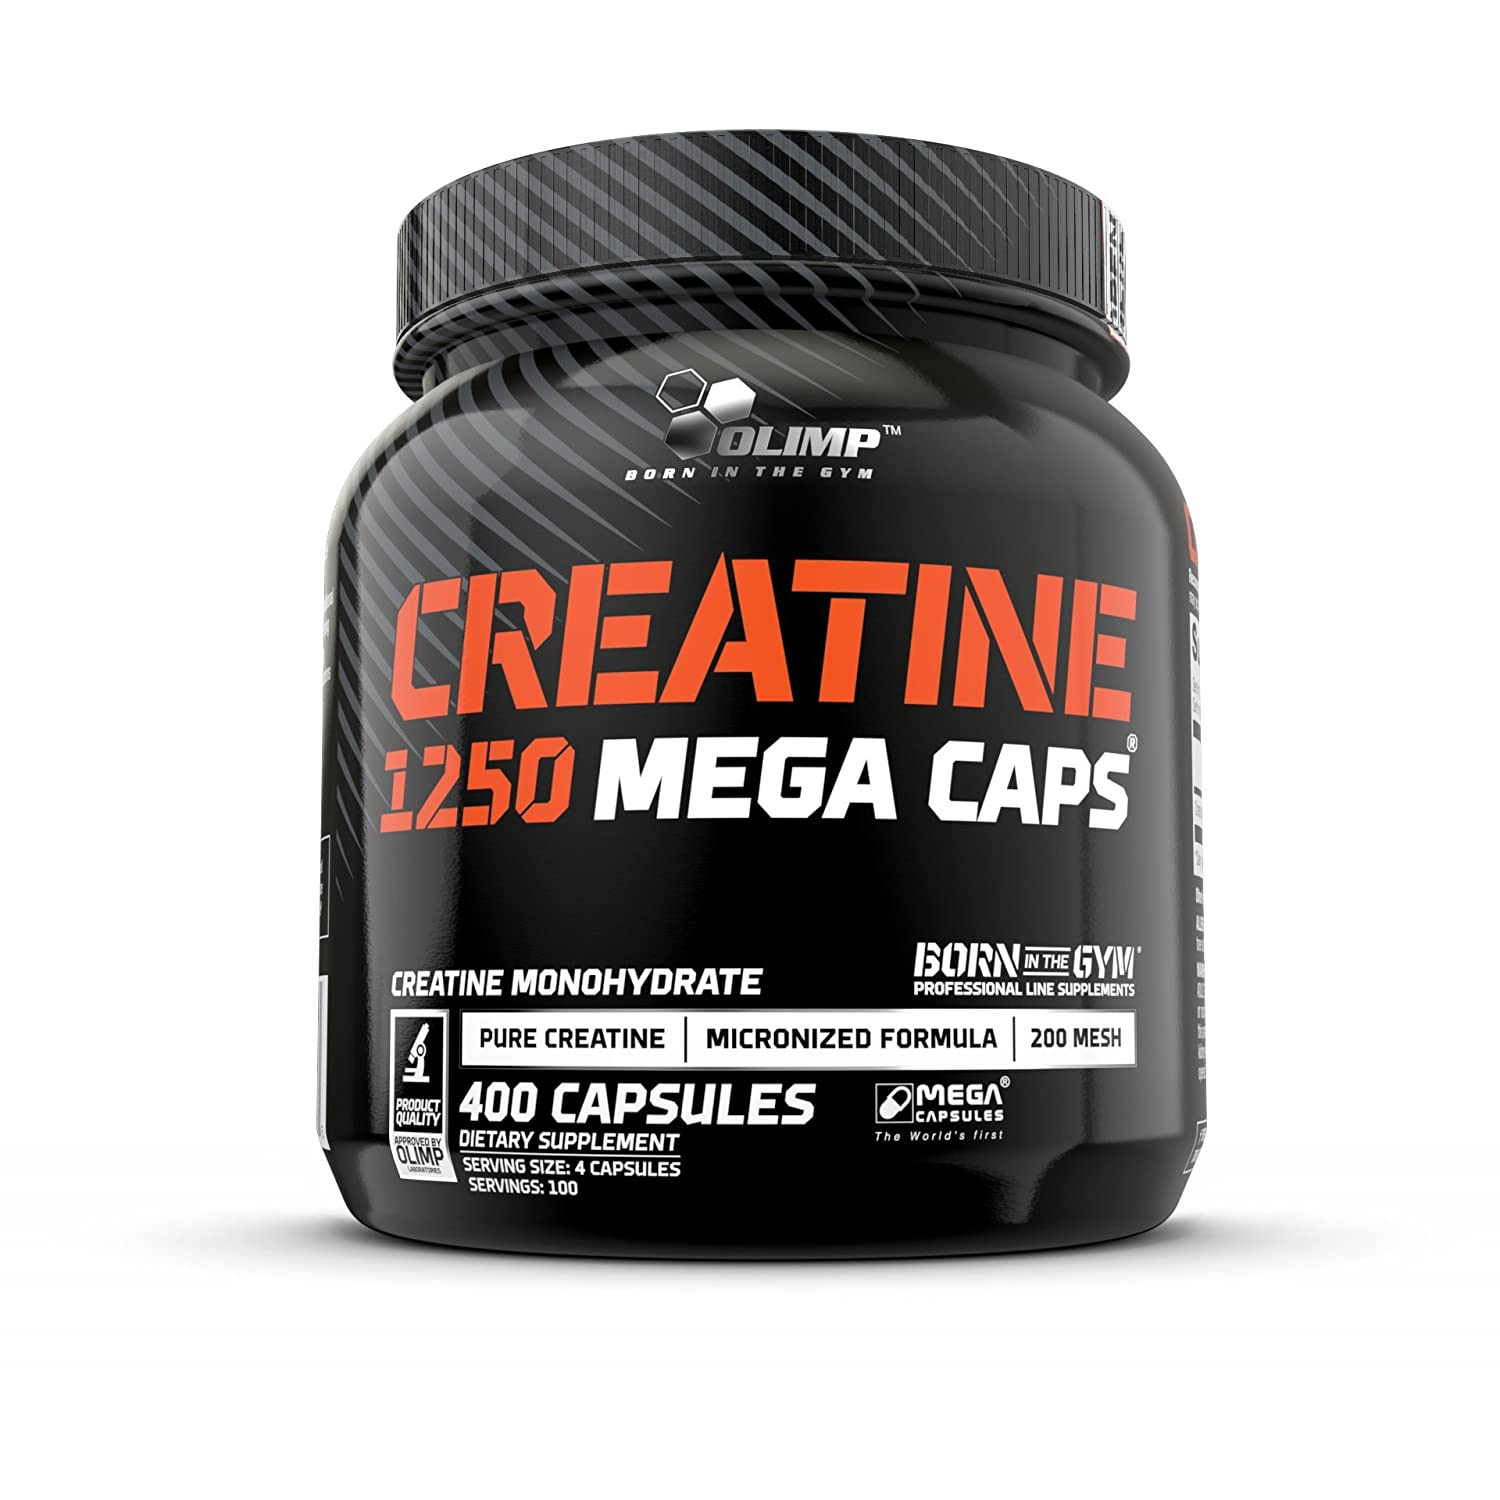 Olimp Creatine 1250 Mega Caps – Pack of 400 Capsules – 100 Servings – Mass Building Regeneration – Perfect for The Gym, Biking, or Running